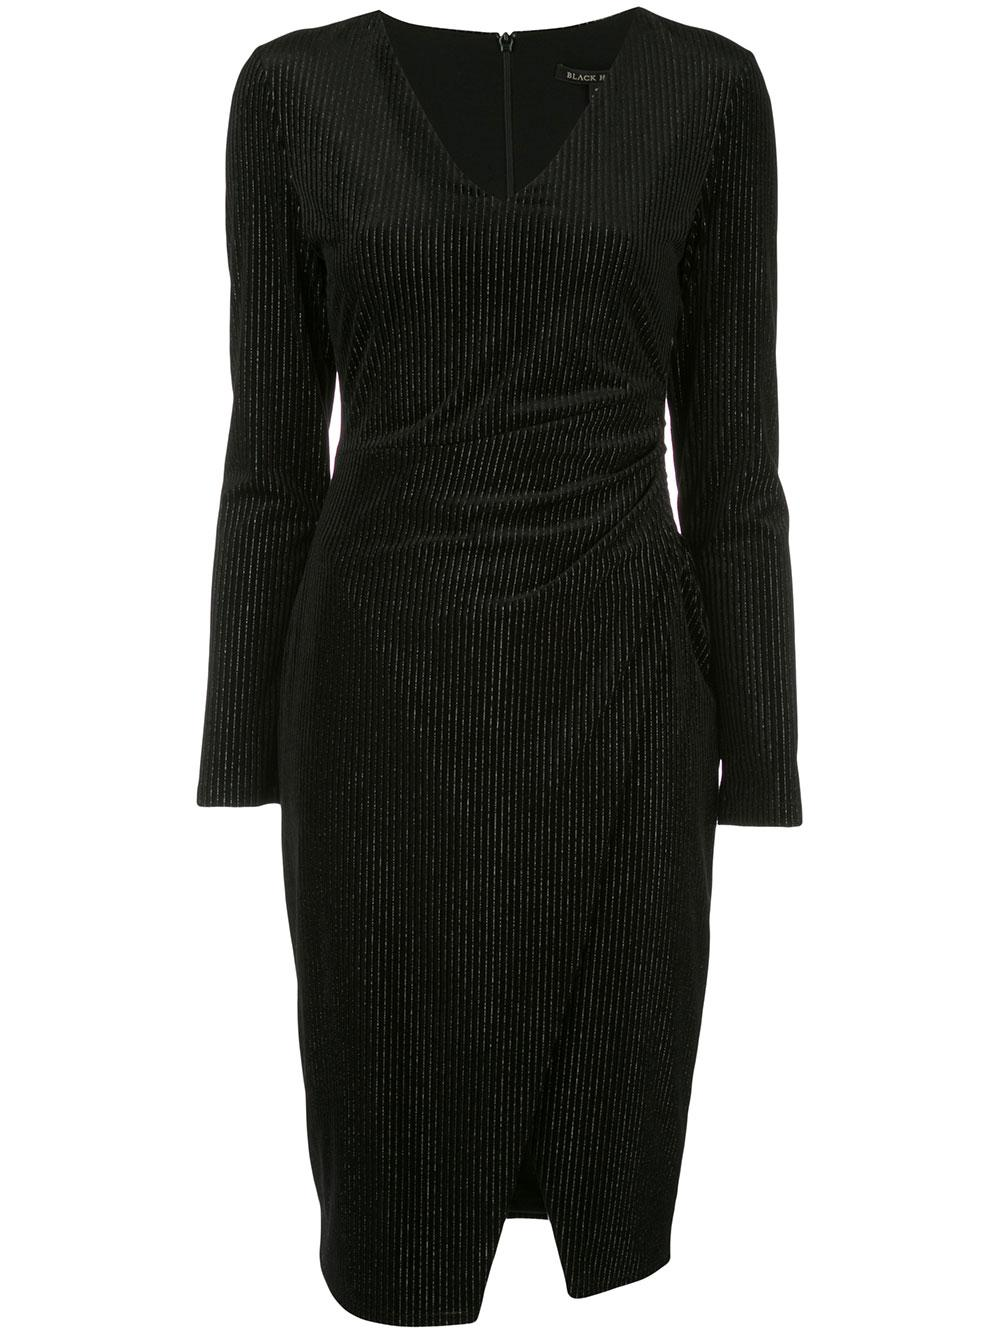 Miramar Long Sleeve Sheath